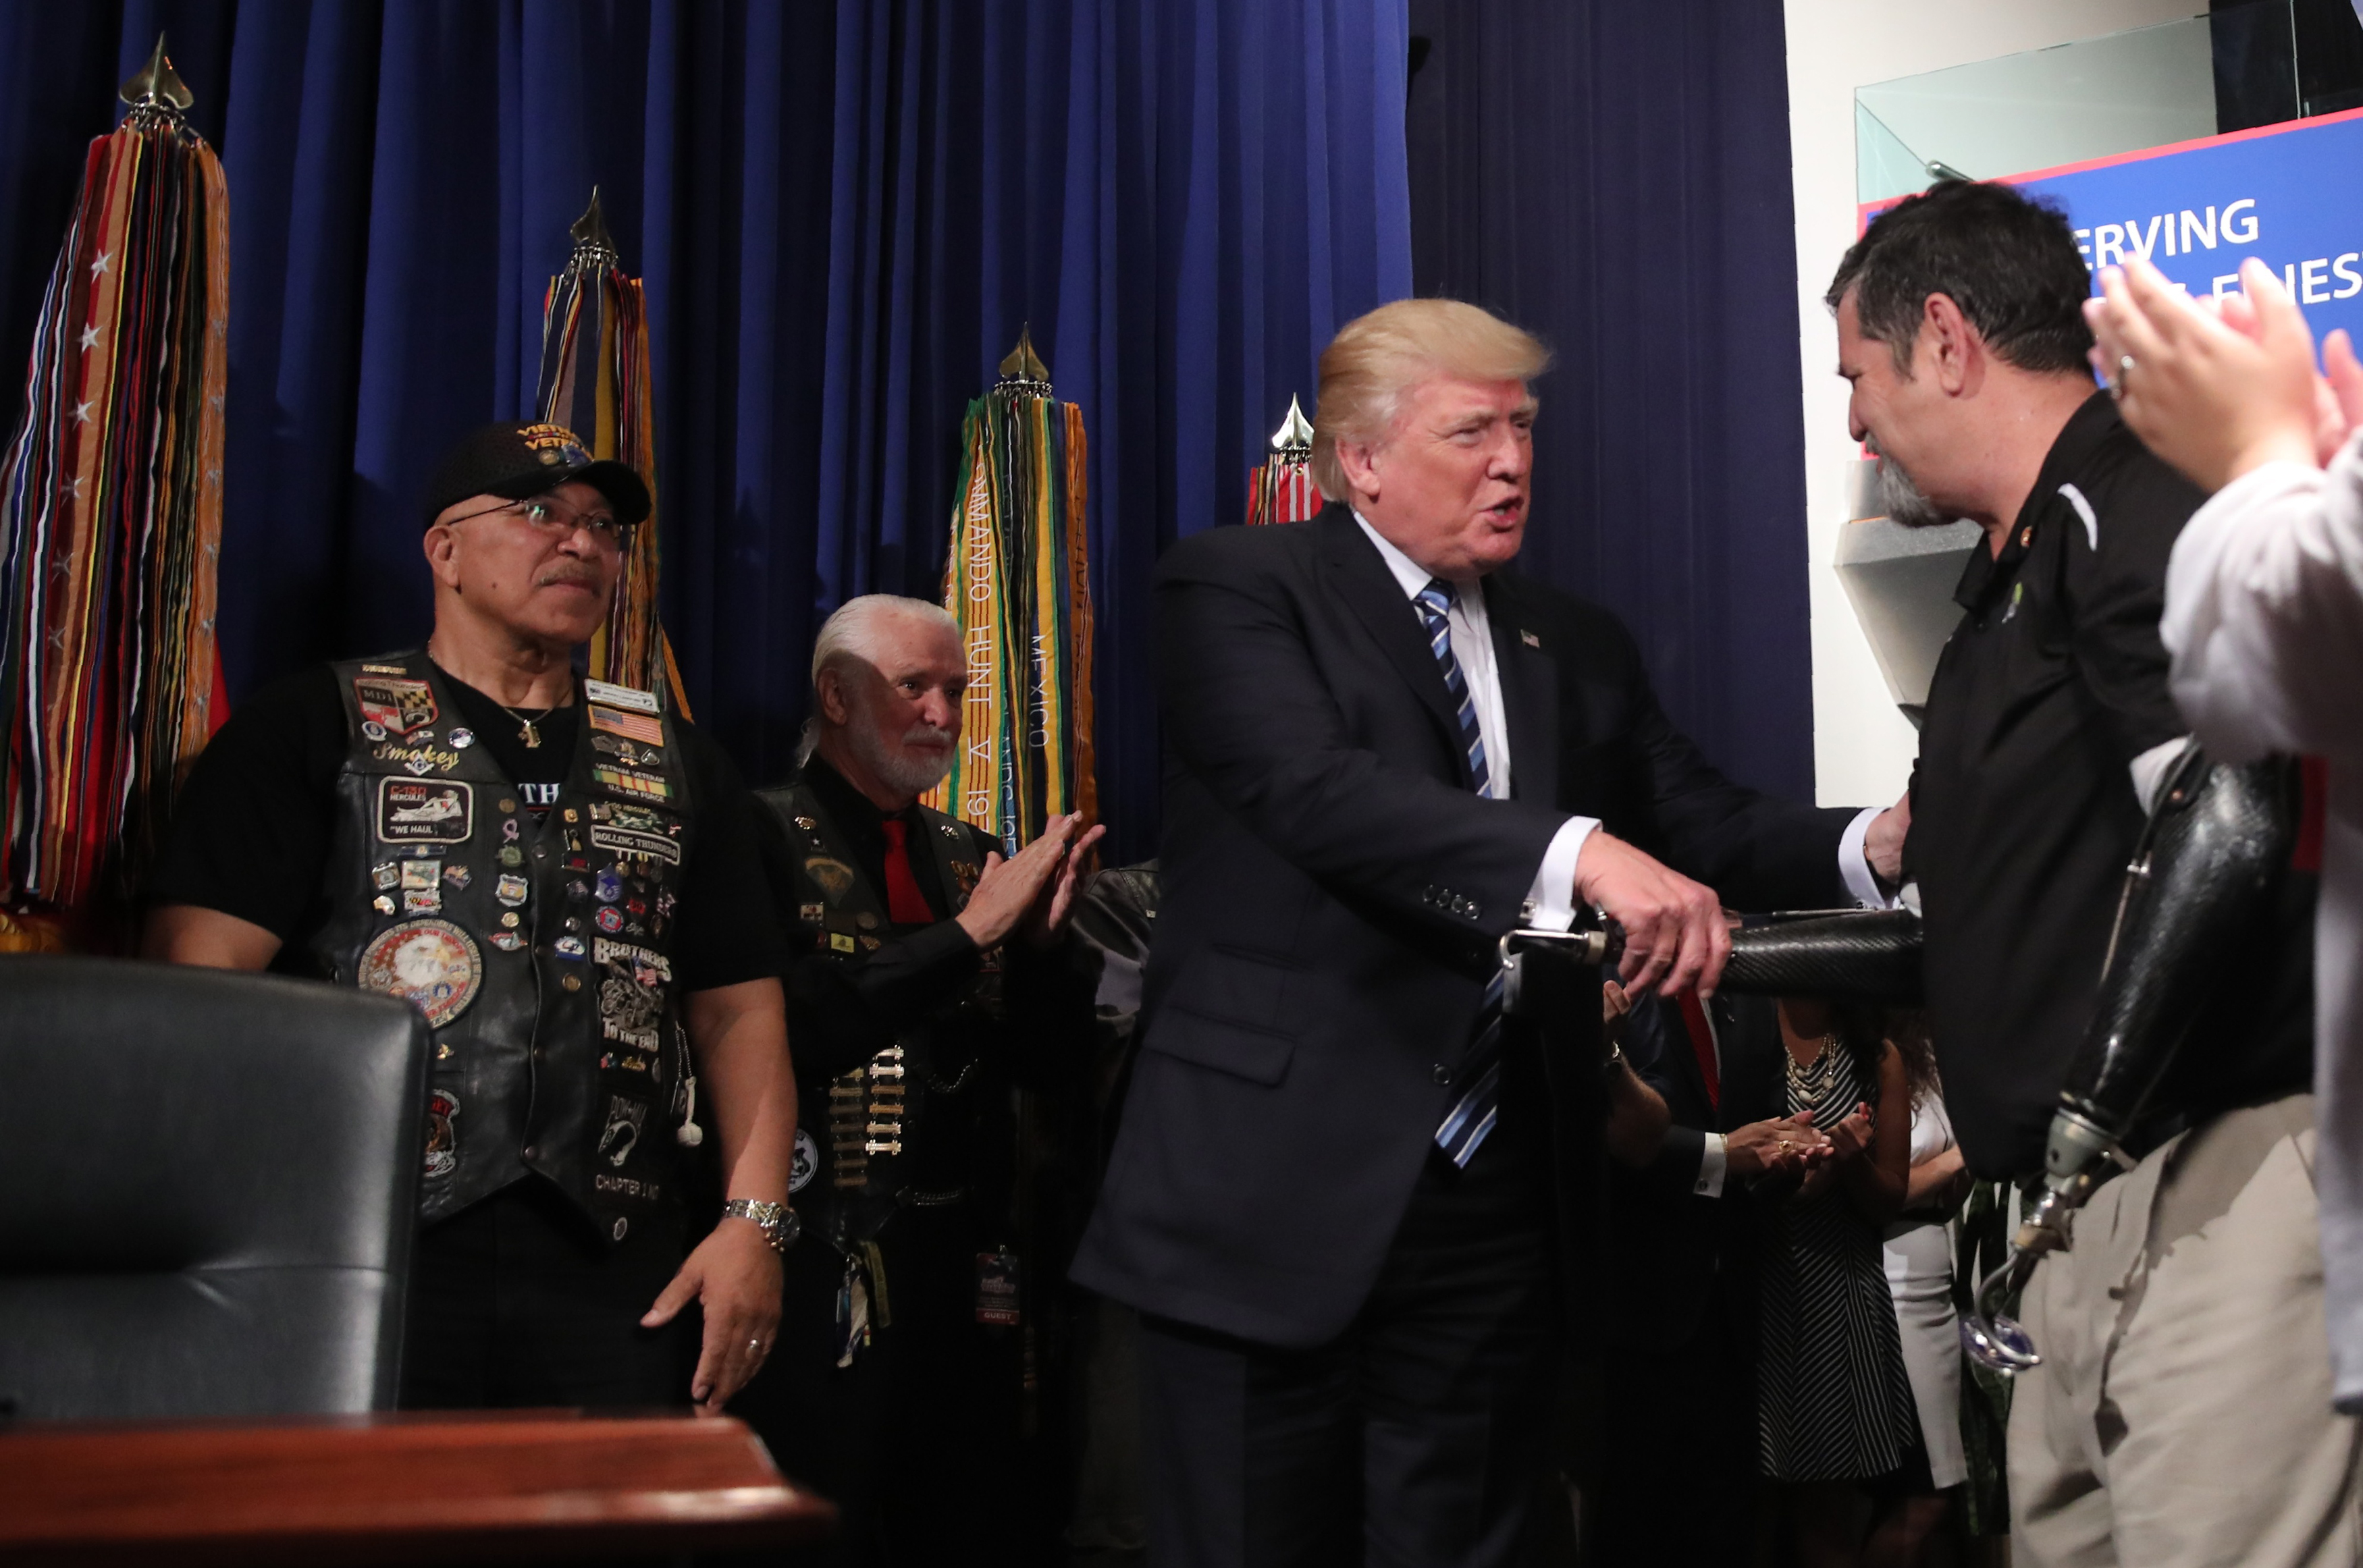 U.S. President Donald Trump greets veterans prior to signing an Executive Order on improving accountability and whistleblower protection, at the Veterans Affairs Department in Washington, April 27, 2017. REUTERS/Carlos Barria